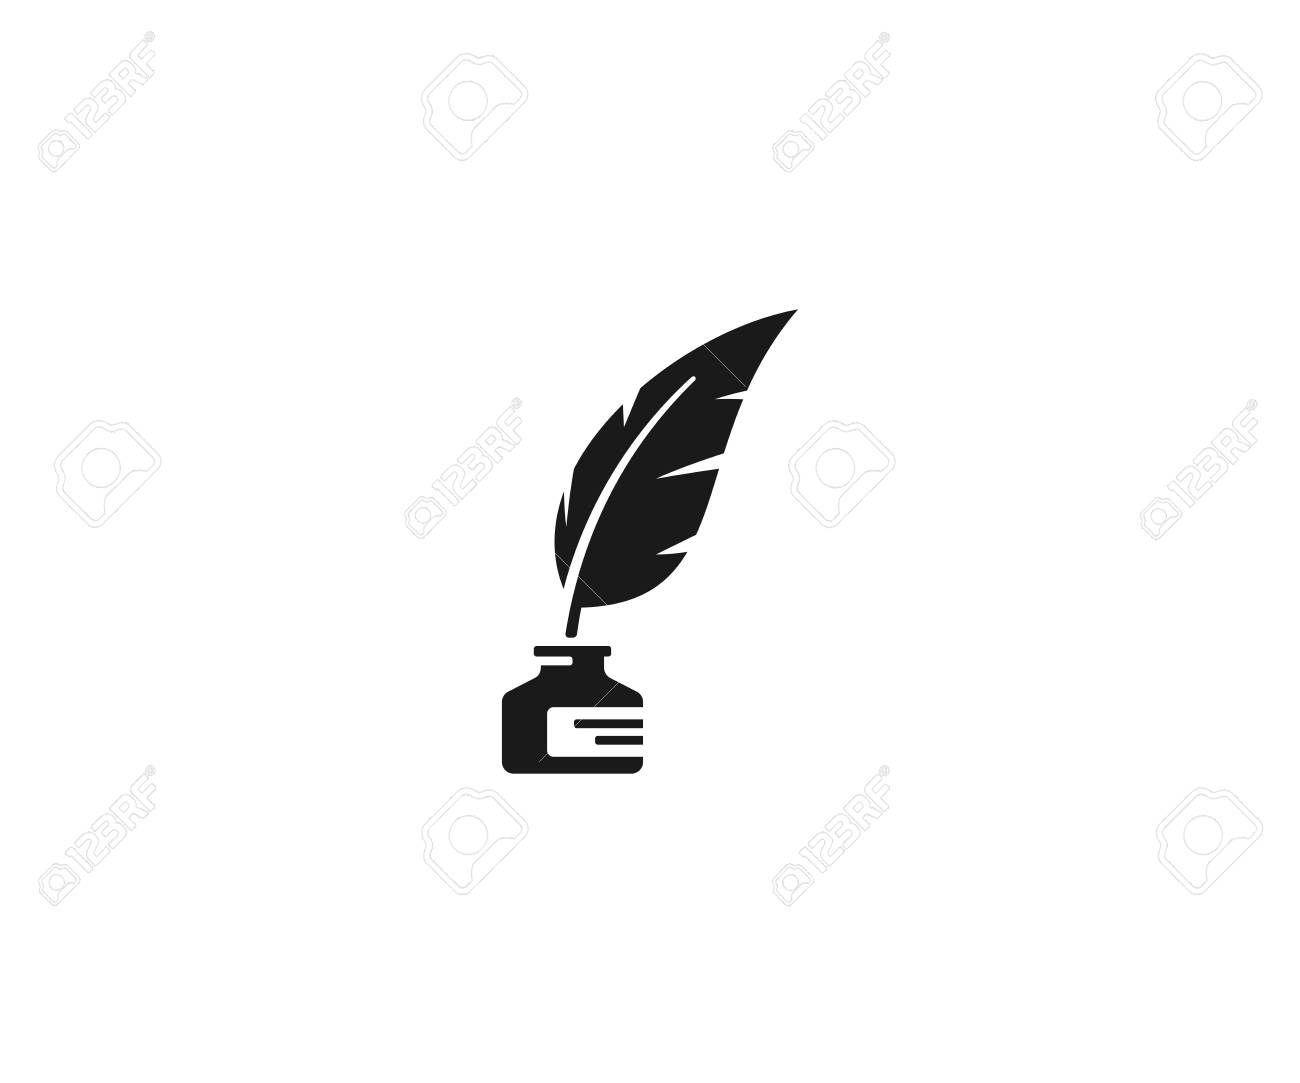 Free Quill Pen Clipart in AI, SVG, EPS or PSD